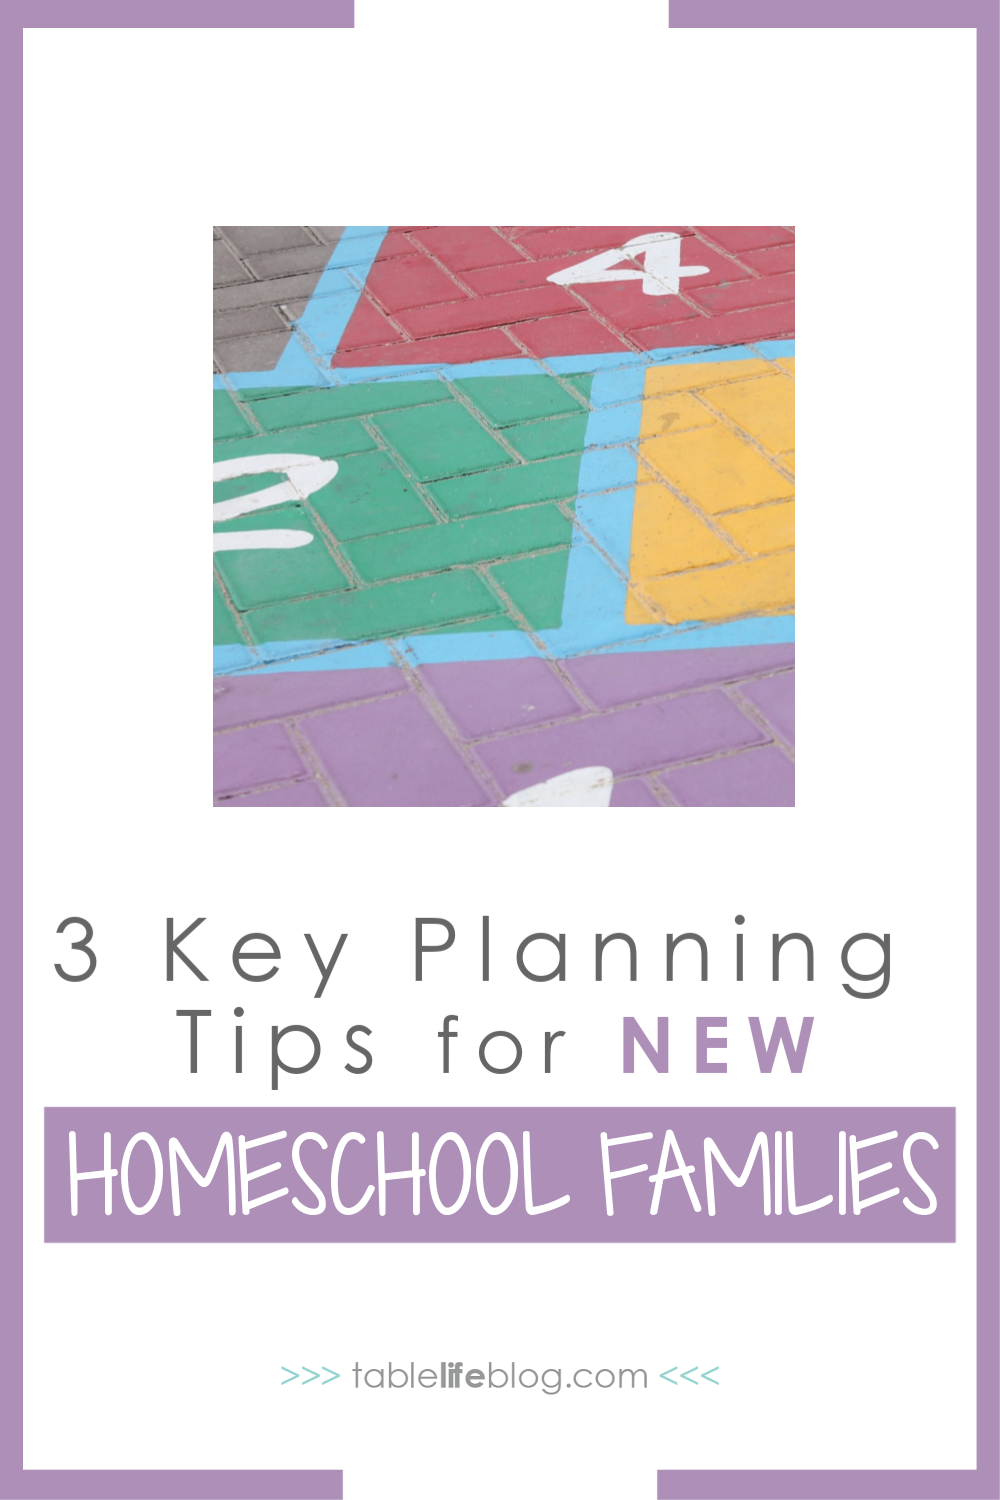 Don't let the planning process overwhelm you if you're new to homeschooling. Here are 3 key things to keep in mind if you're making plans for your first year of homeschooling.